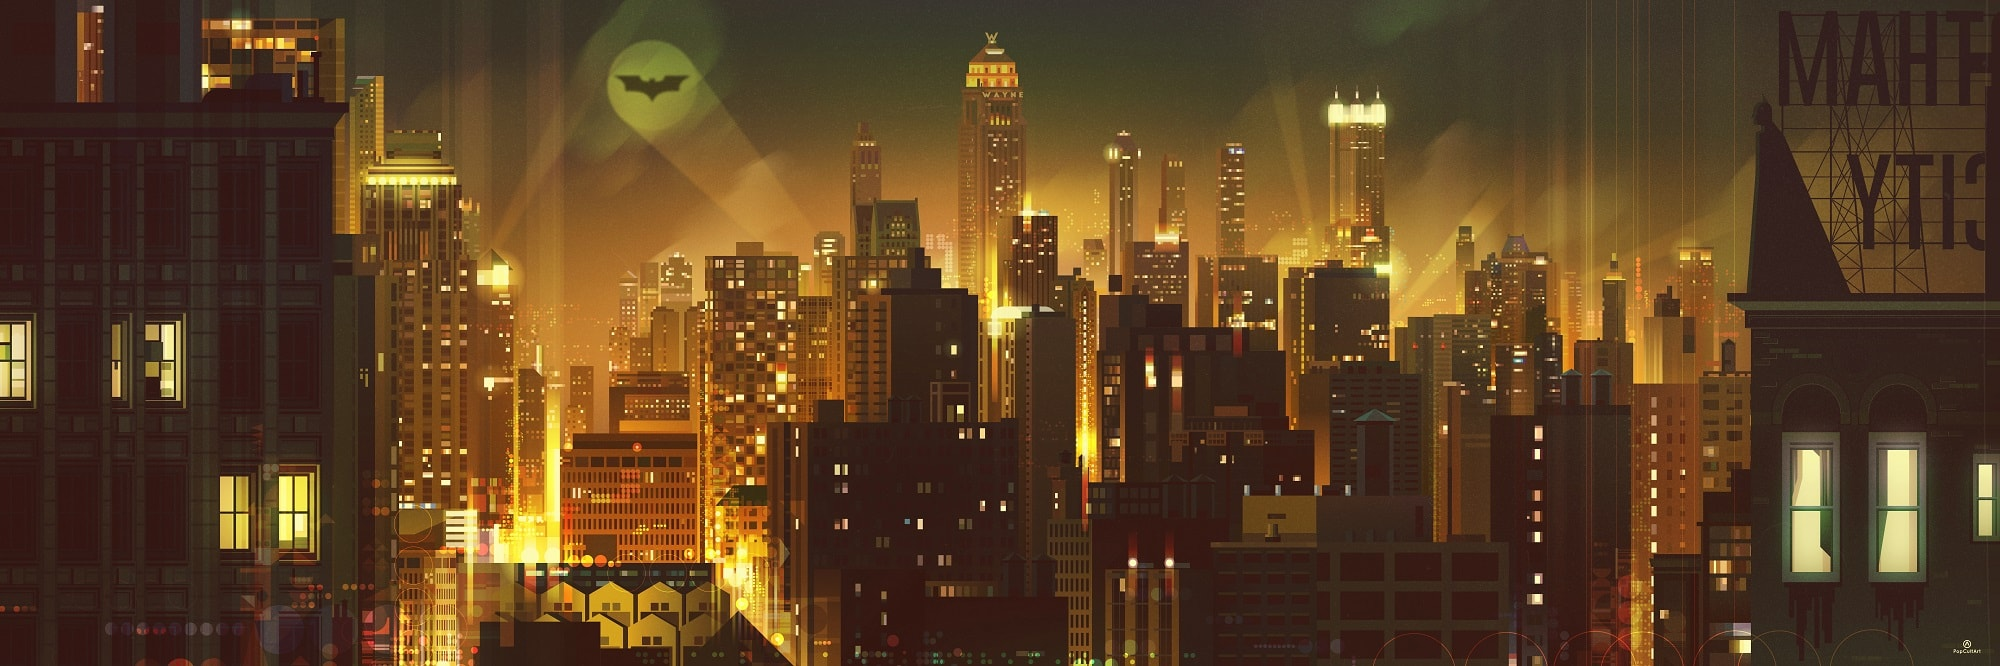 Gotham city by James Gilleard- variant